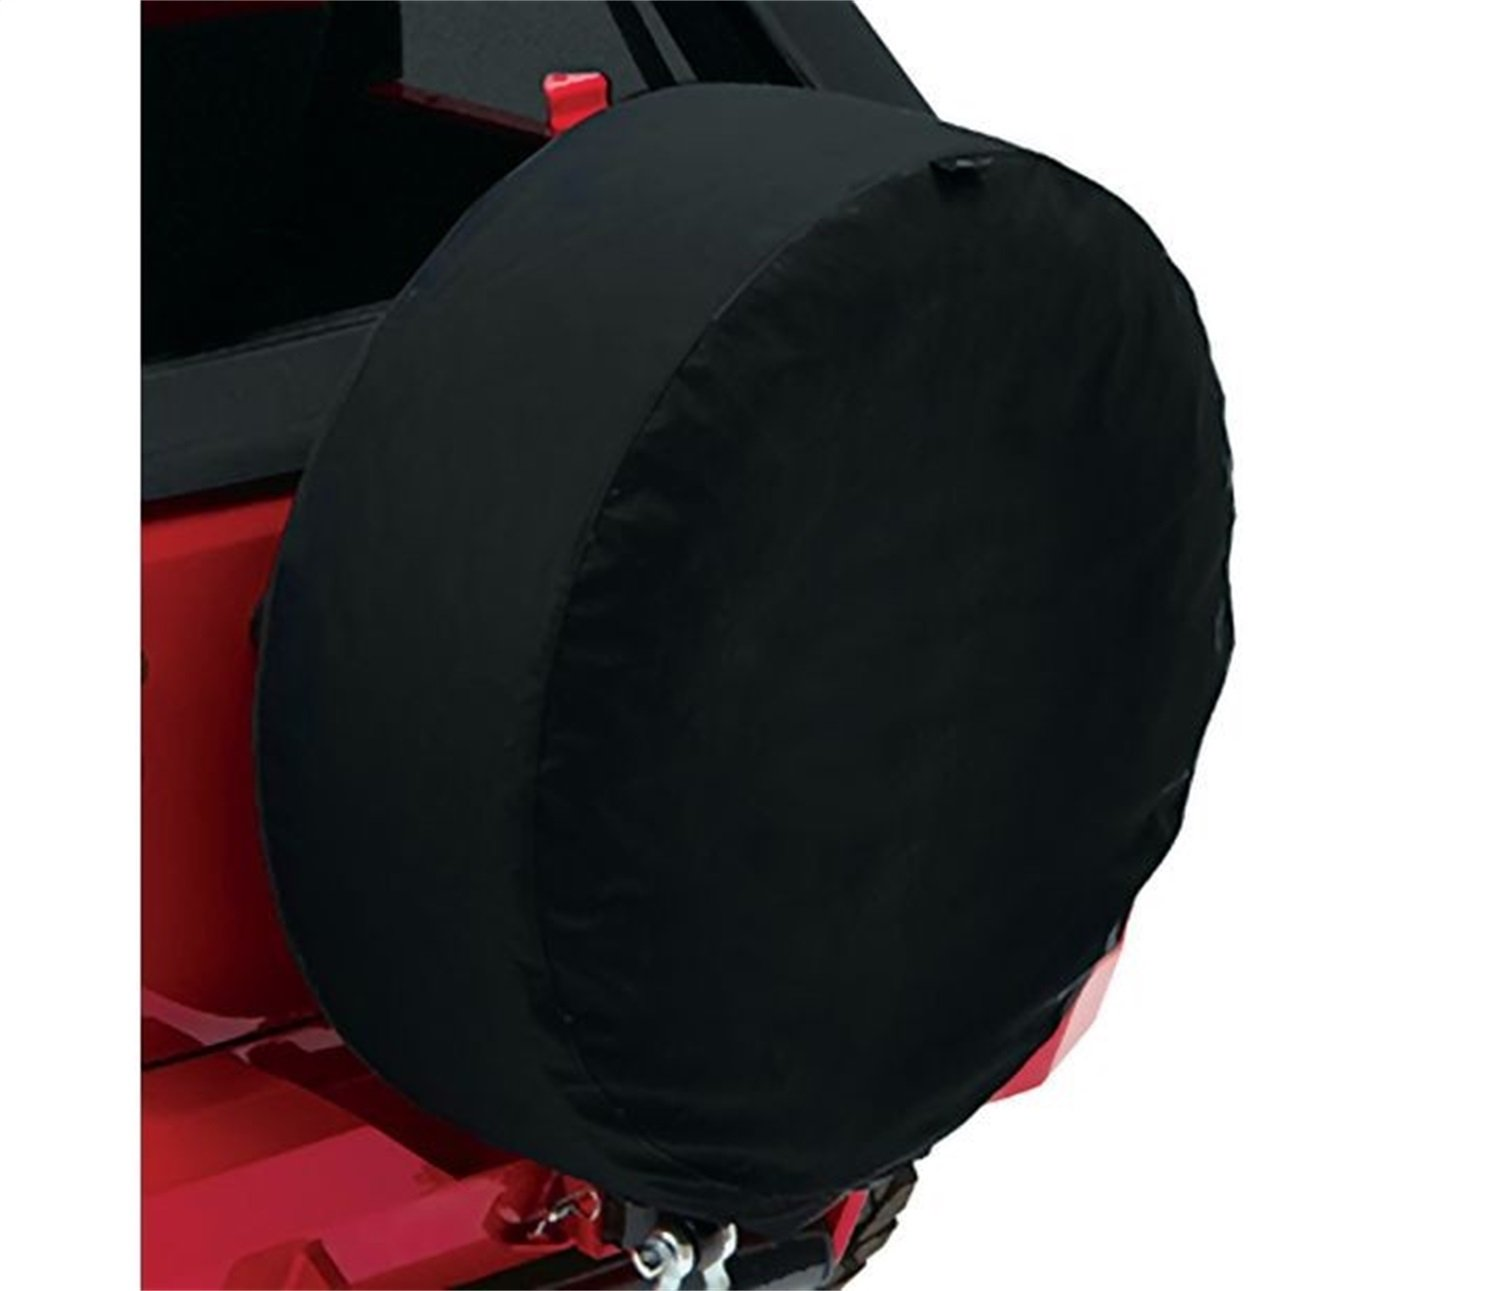 Bestop 61031-17 Black Twill X-Large Tire Cover for tires 31'' diameter, 11'' deep